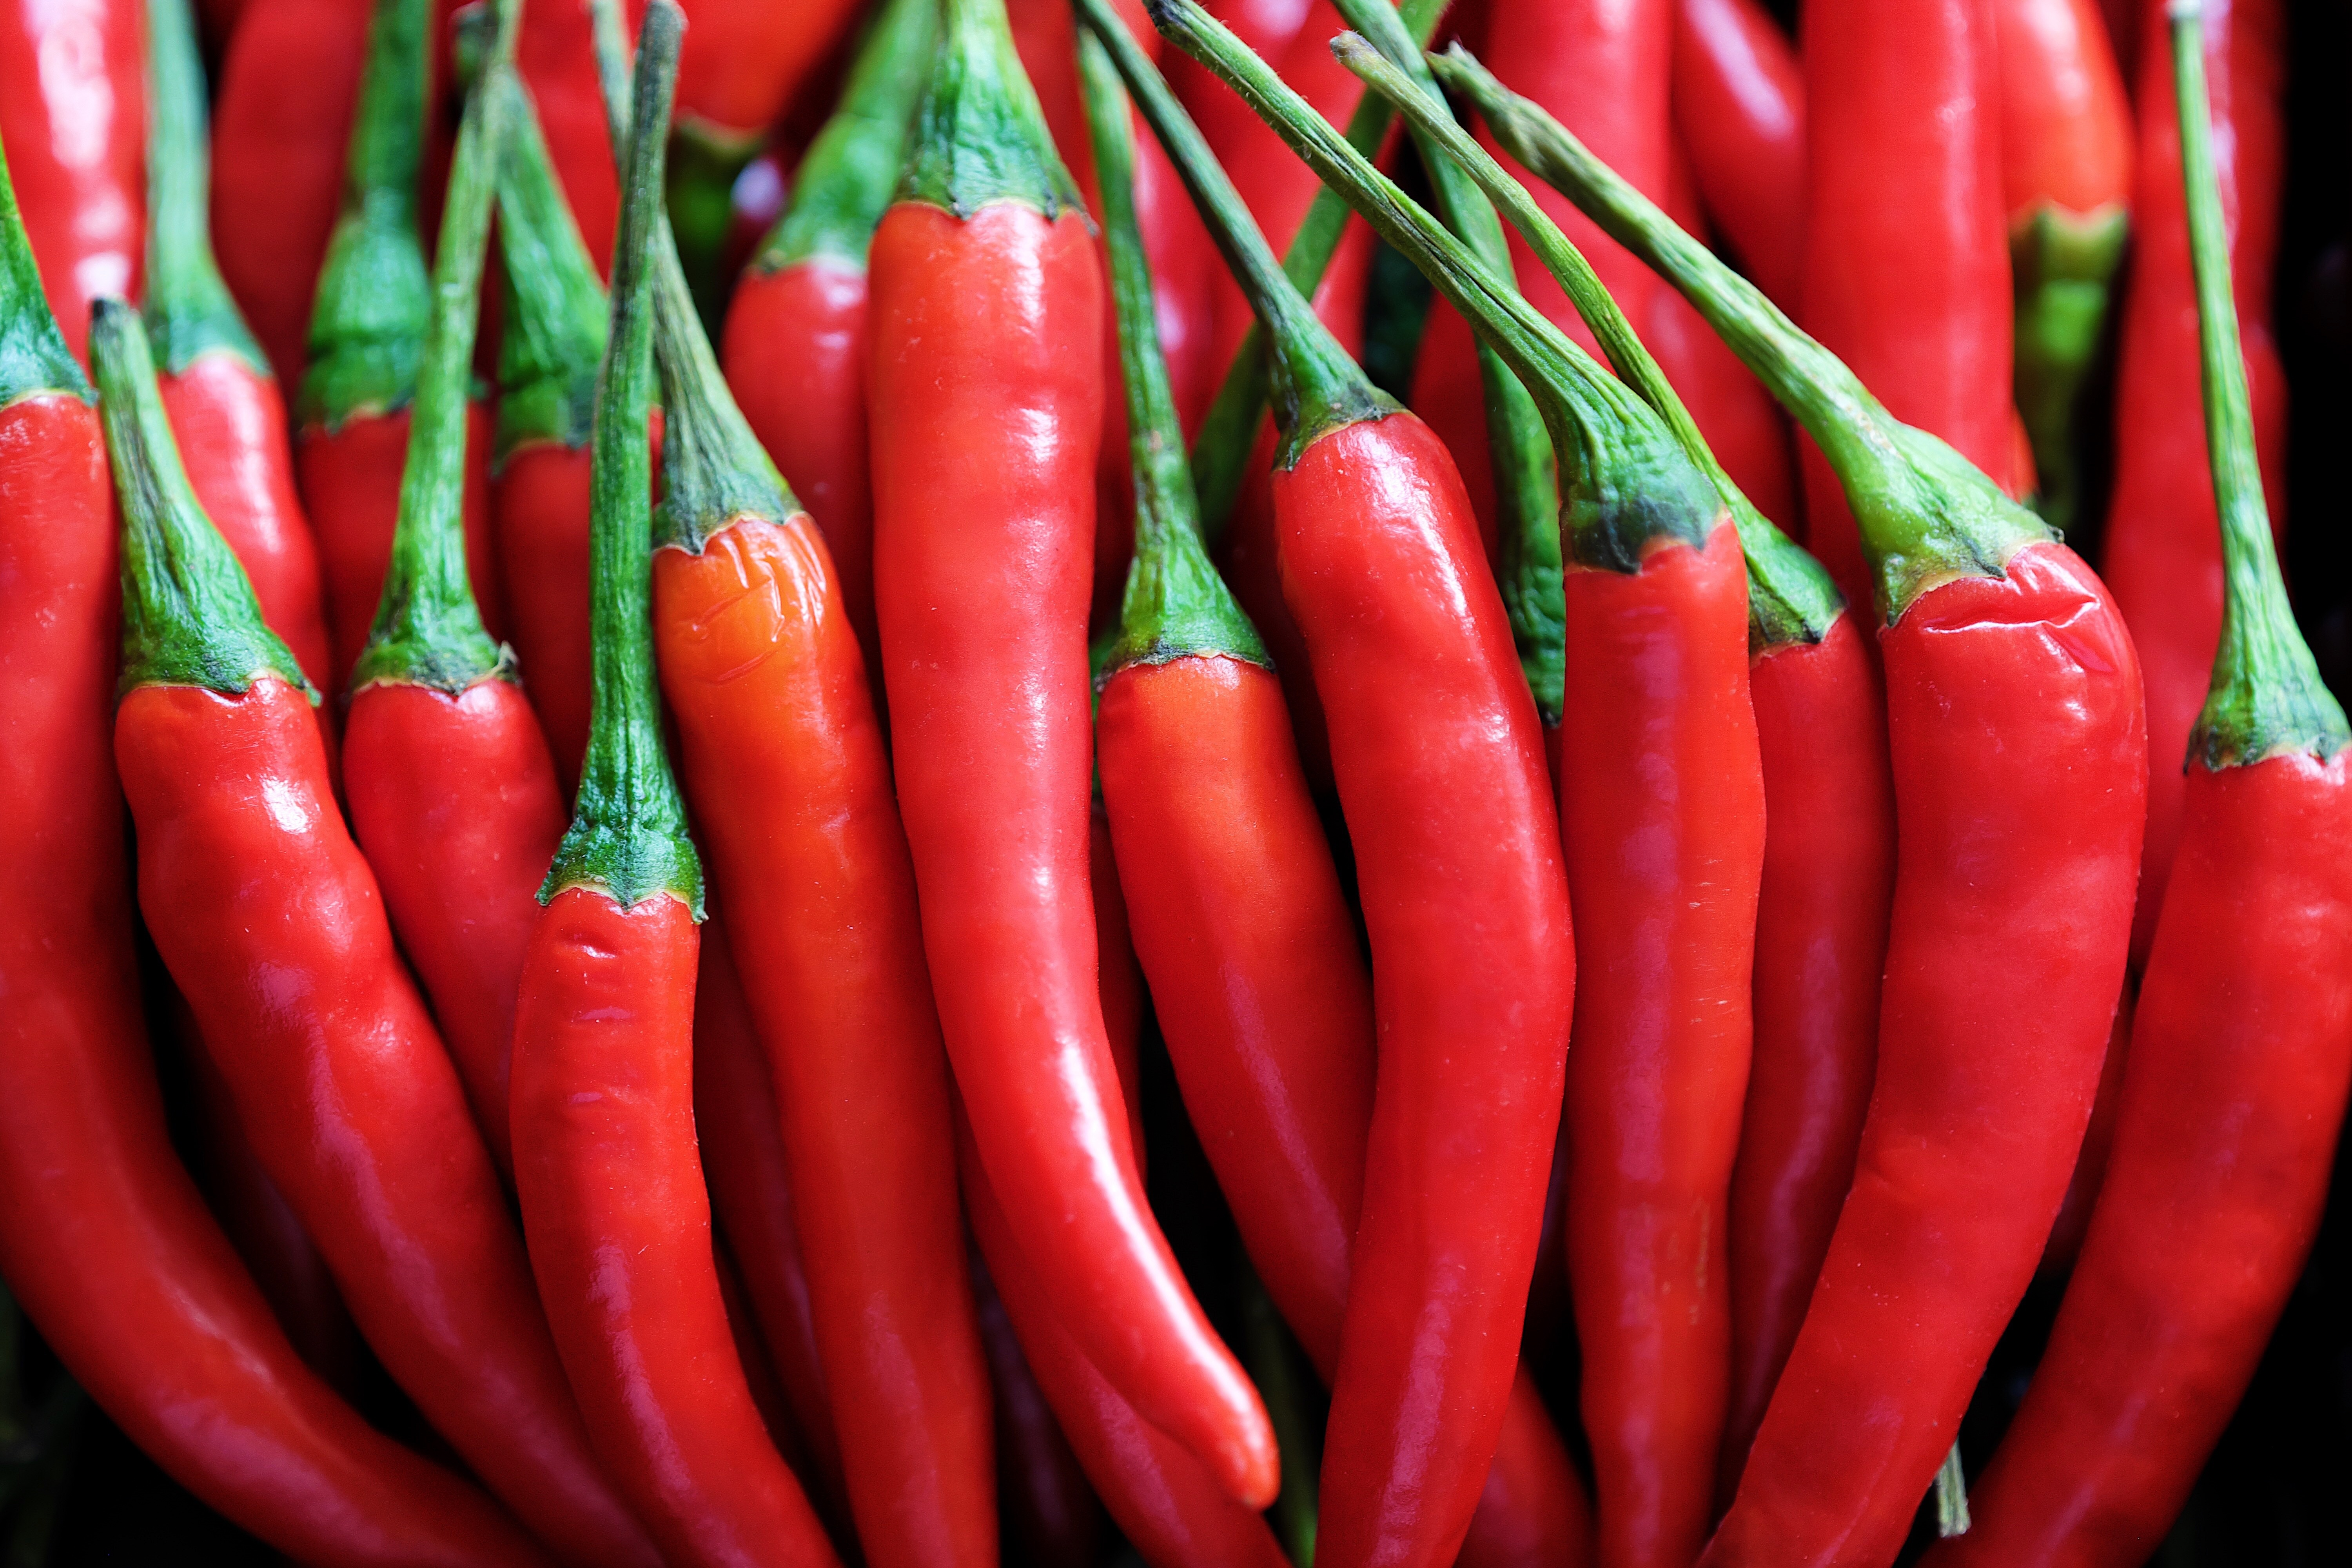 Regularly eatingchilepeppers is linked to a lower risk of death from cardiovascular disease, but experts suggestthe findings don'tnecessarilymean you should drastically spice up your diet.